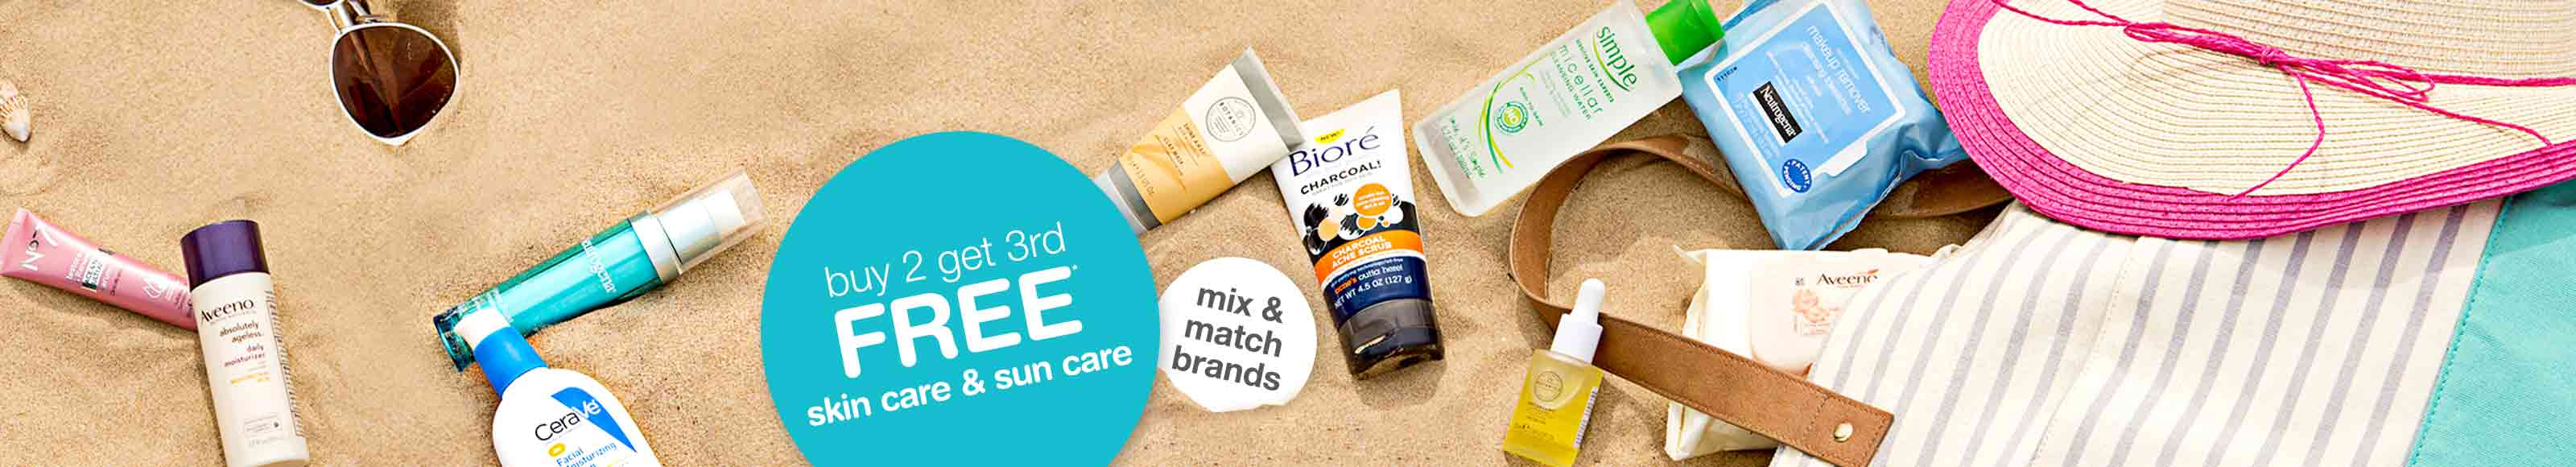 Buy 2 get 3rd FREE* skin care & sun care. Mix & Match brands.